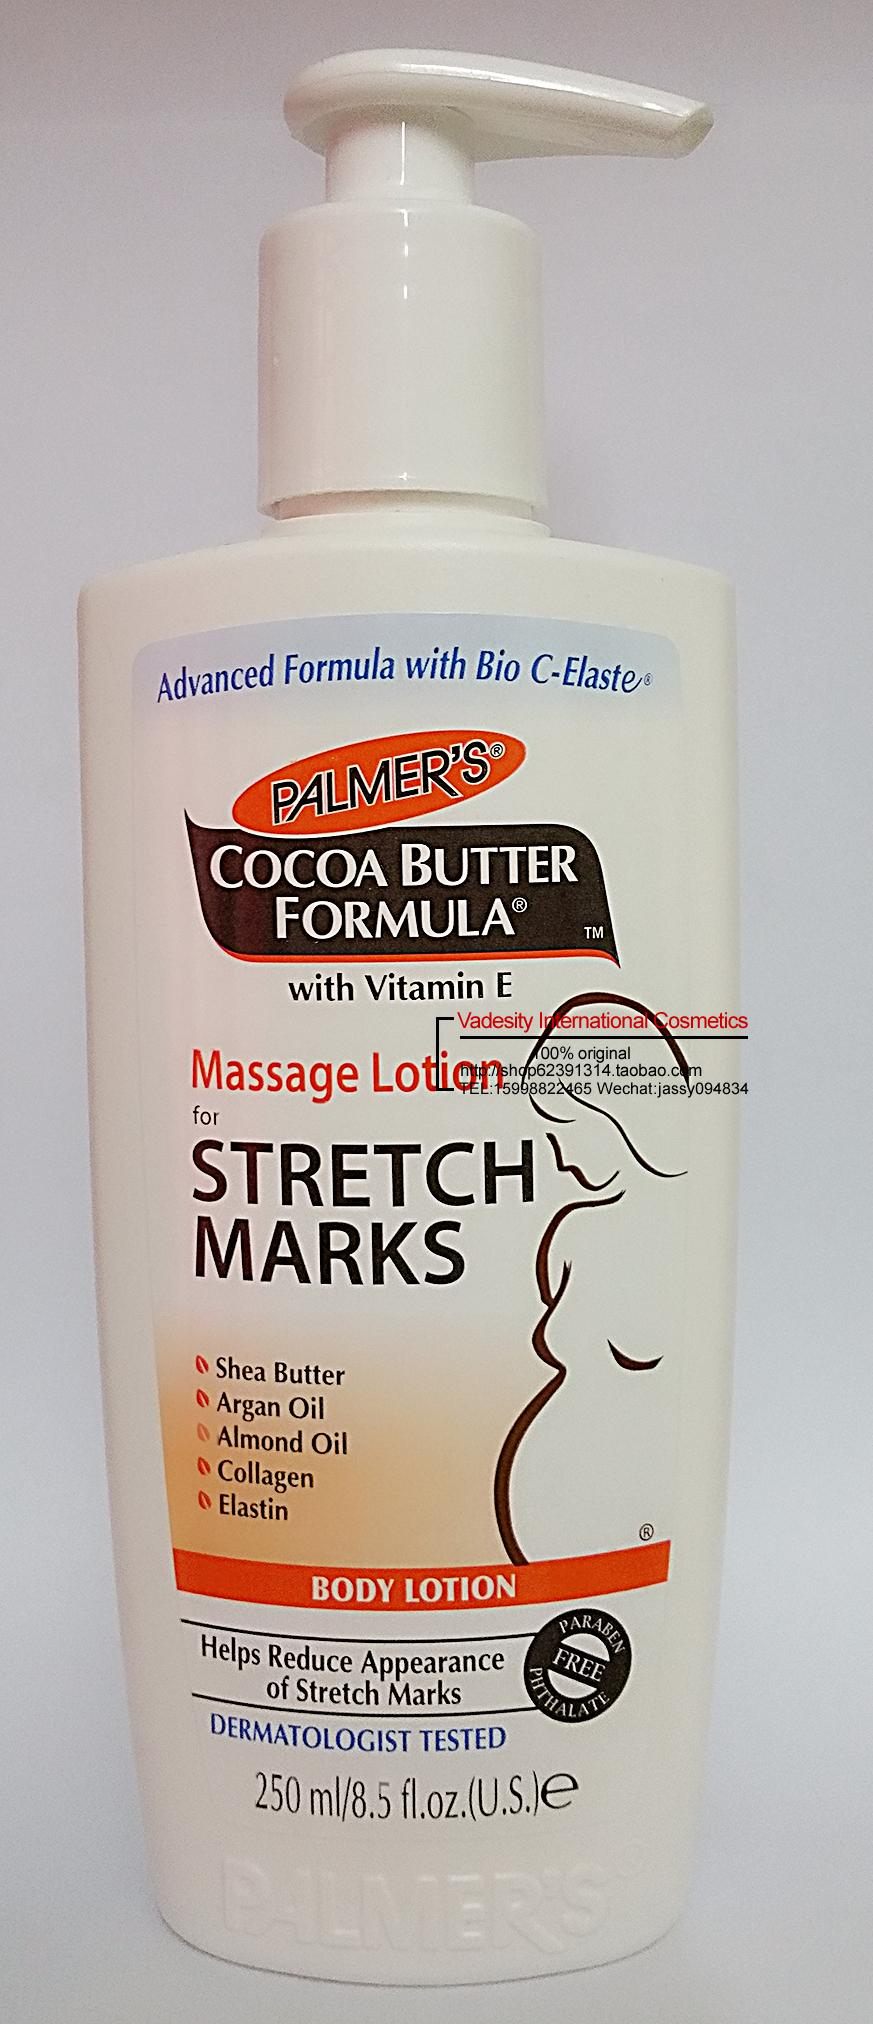 Cocoa Butter Formula Concentrated Cream By Palmers